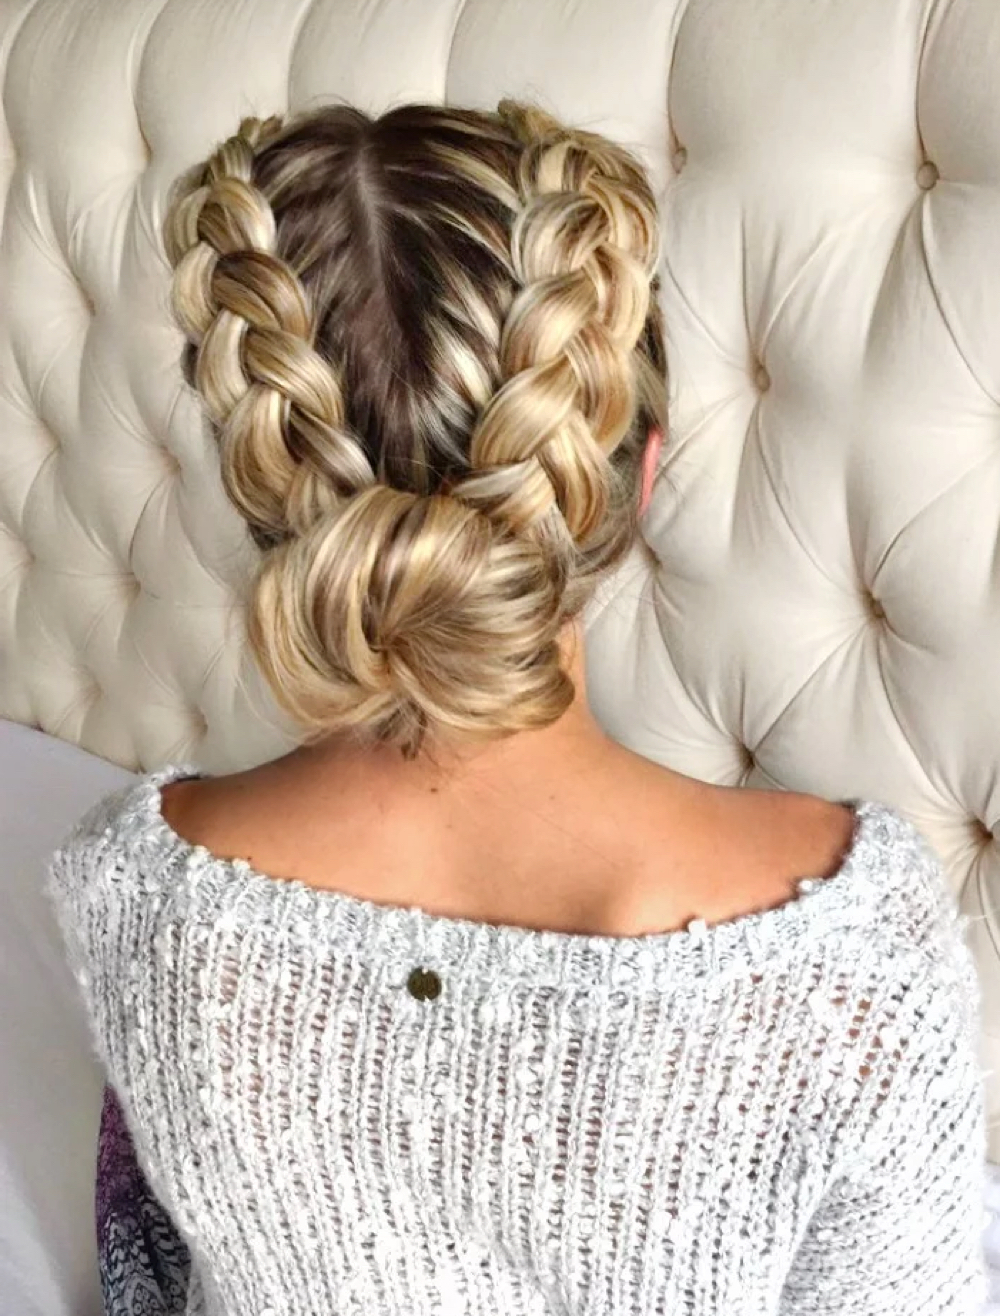 29 Gorgeous Braided Updo Ideas For 2019 With Latest French Braid Low Chignon Hairstyles (Gallery 8 of 20)